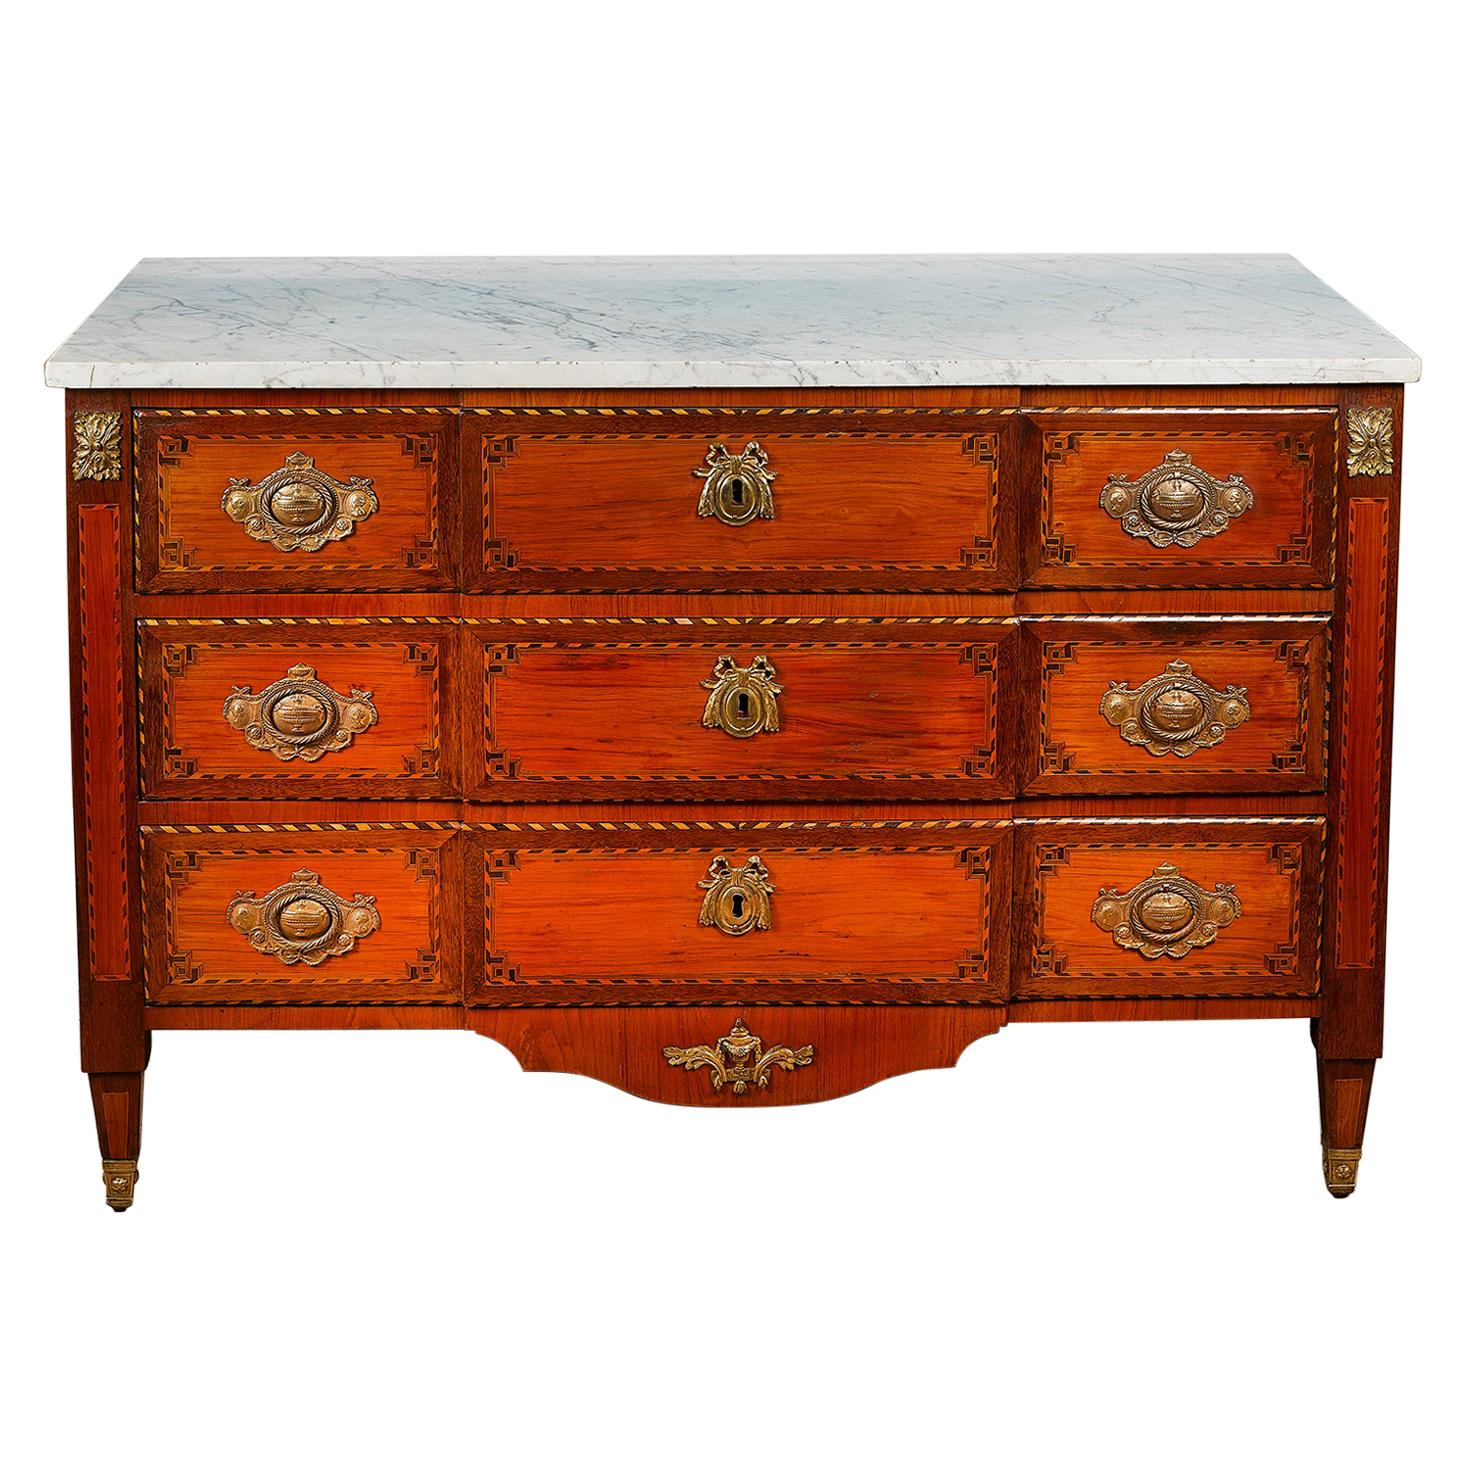 19th Century French Louis XVI Style Commode